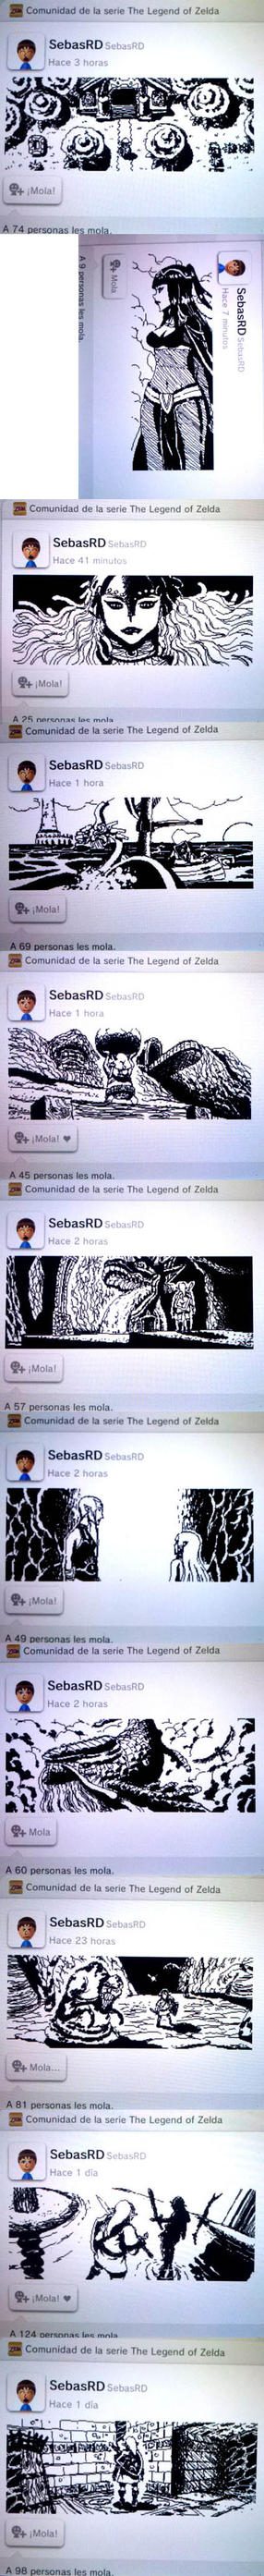 Zelda Miiverse drawings 03 by sebasrd24